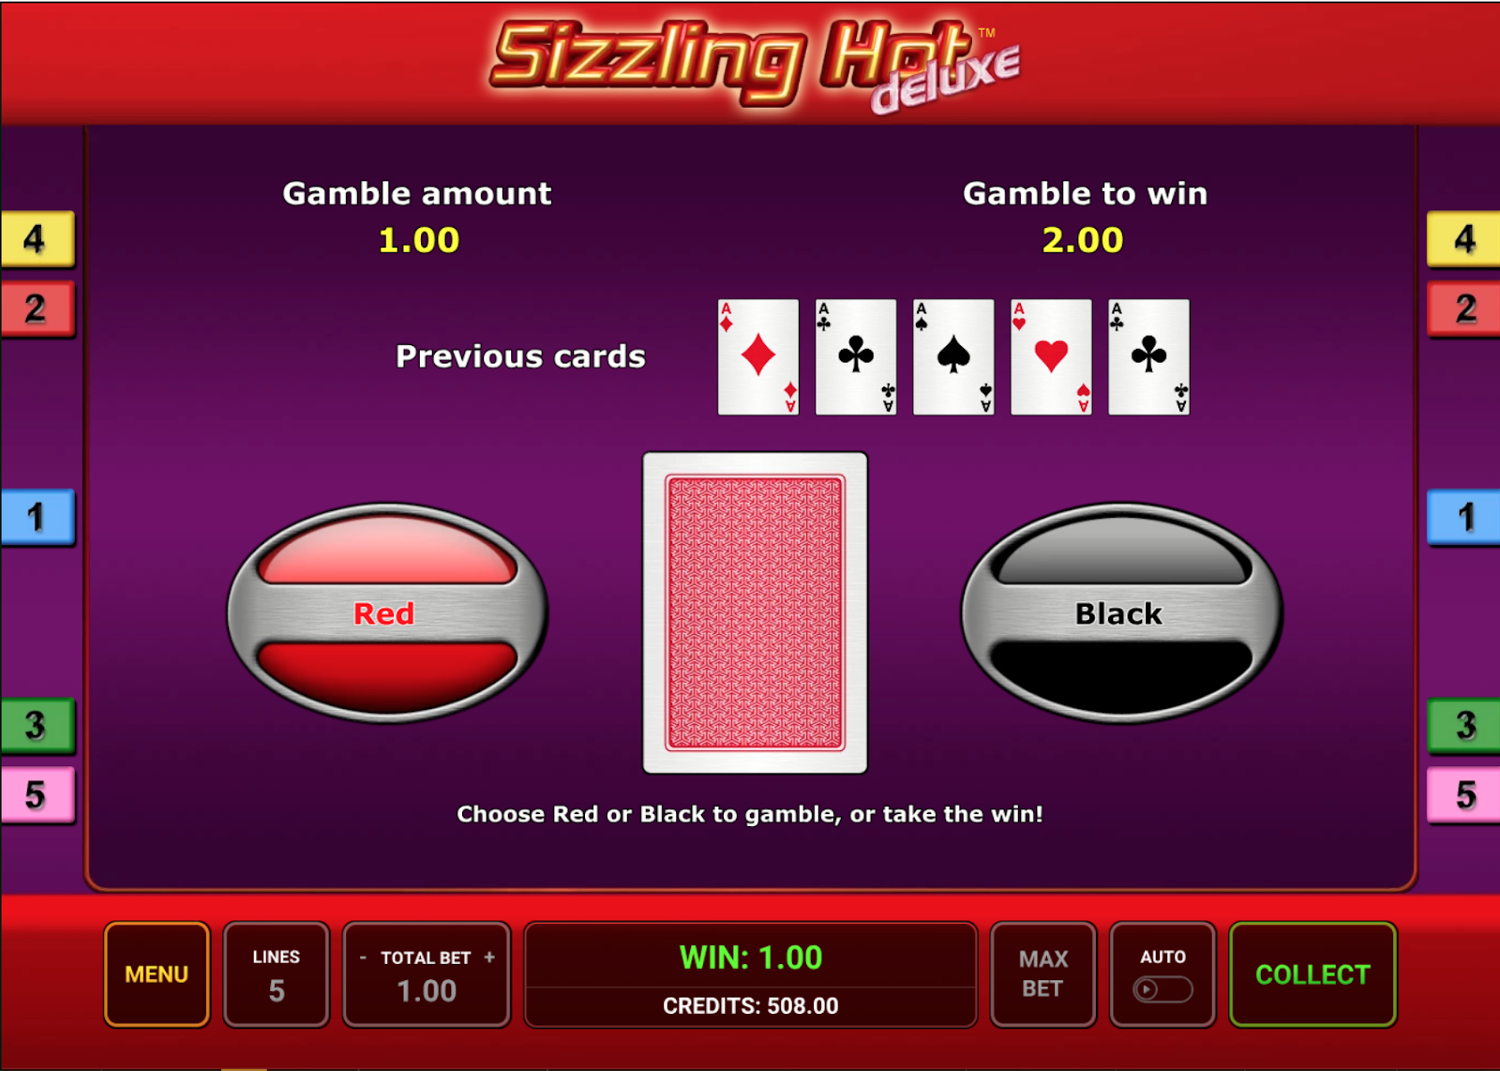 Sizzling Hot Deluxe offers a gamble feature